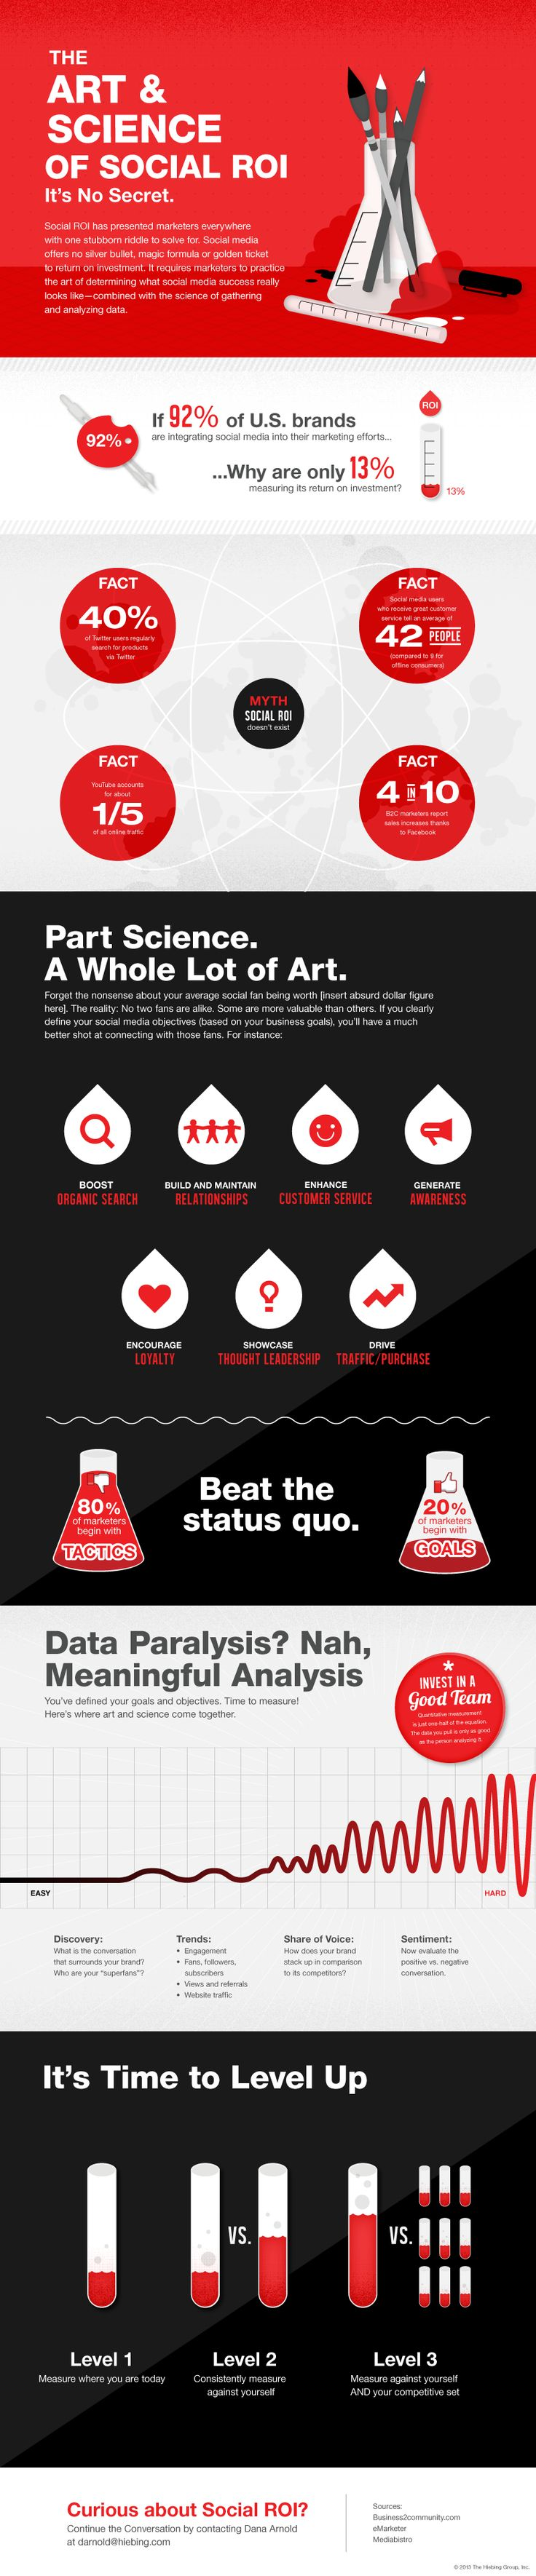 The Art and Science of Social Media ROI - An infographic by Hiebing